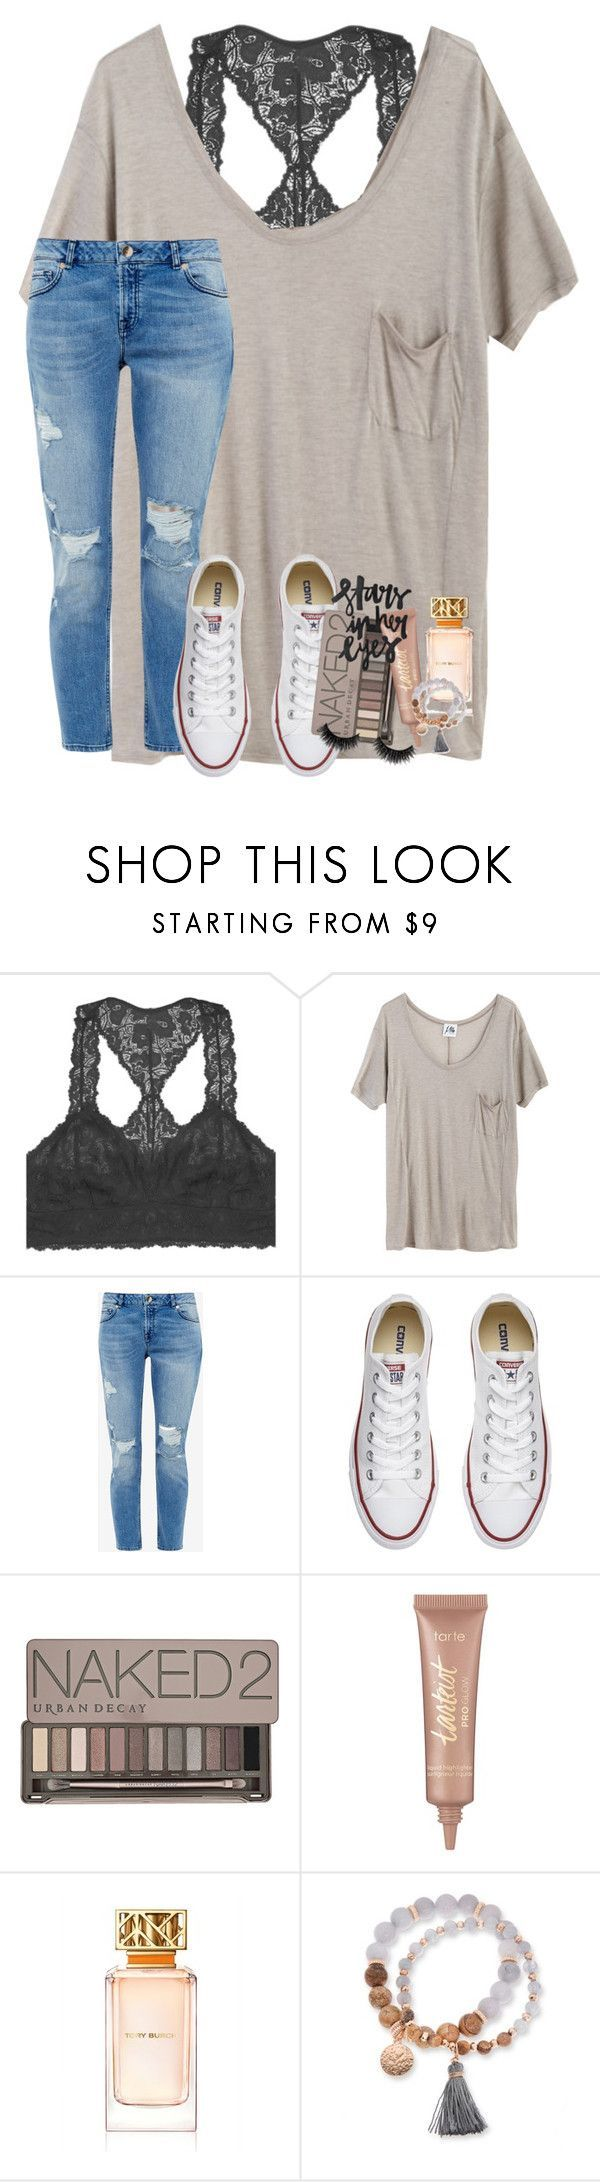 """ben platt"" by lindsaygreys ❤ liked on Polyvore featuring Youmita, Mlle Mademoiselle, Ted Baker, Converse, Urban Decay, tarte, Tory Burch and Kim Rogers"